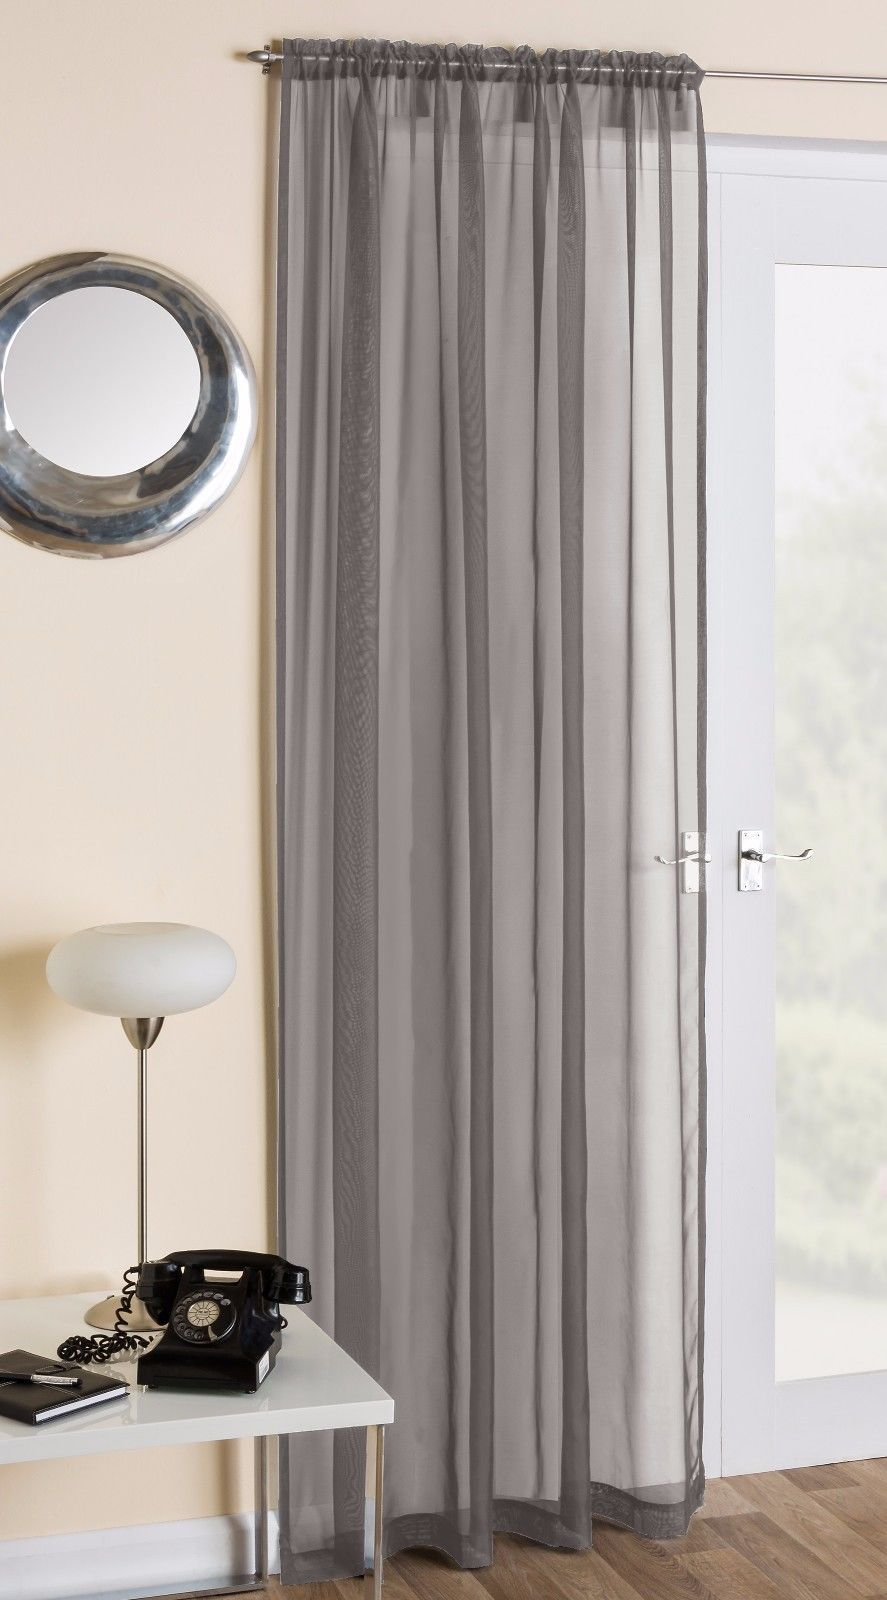 Slot Top Plain Voile Net Curtain Panel Rod Pole Or Wire All